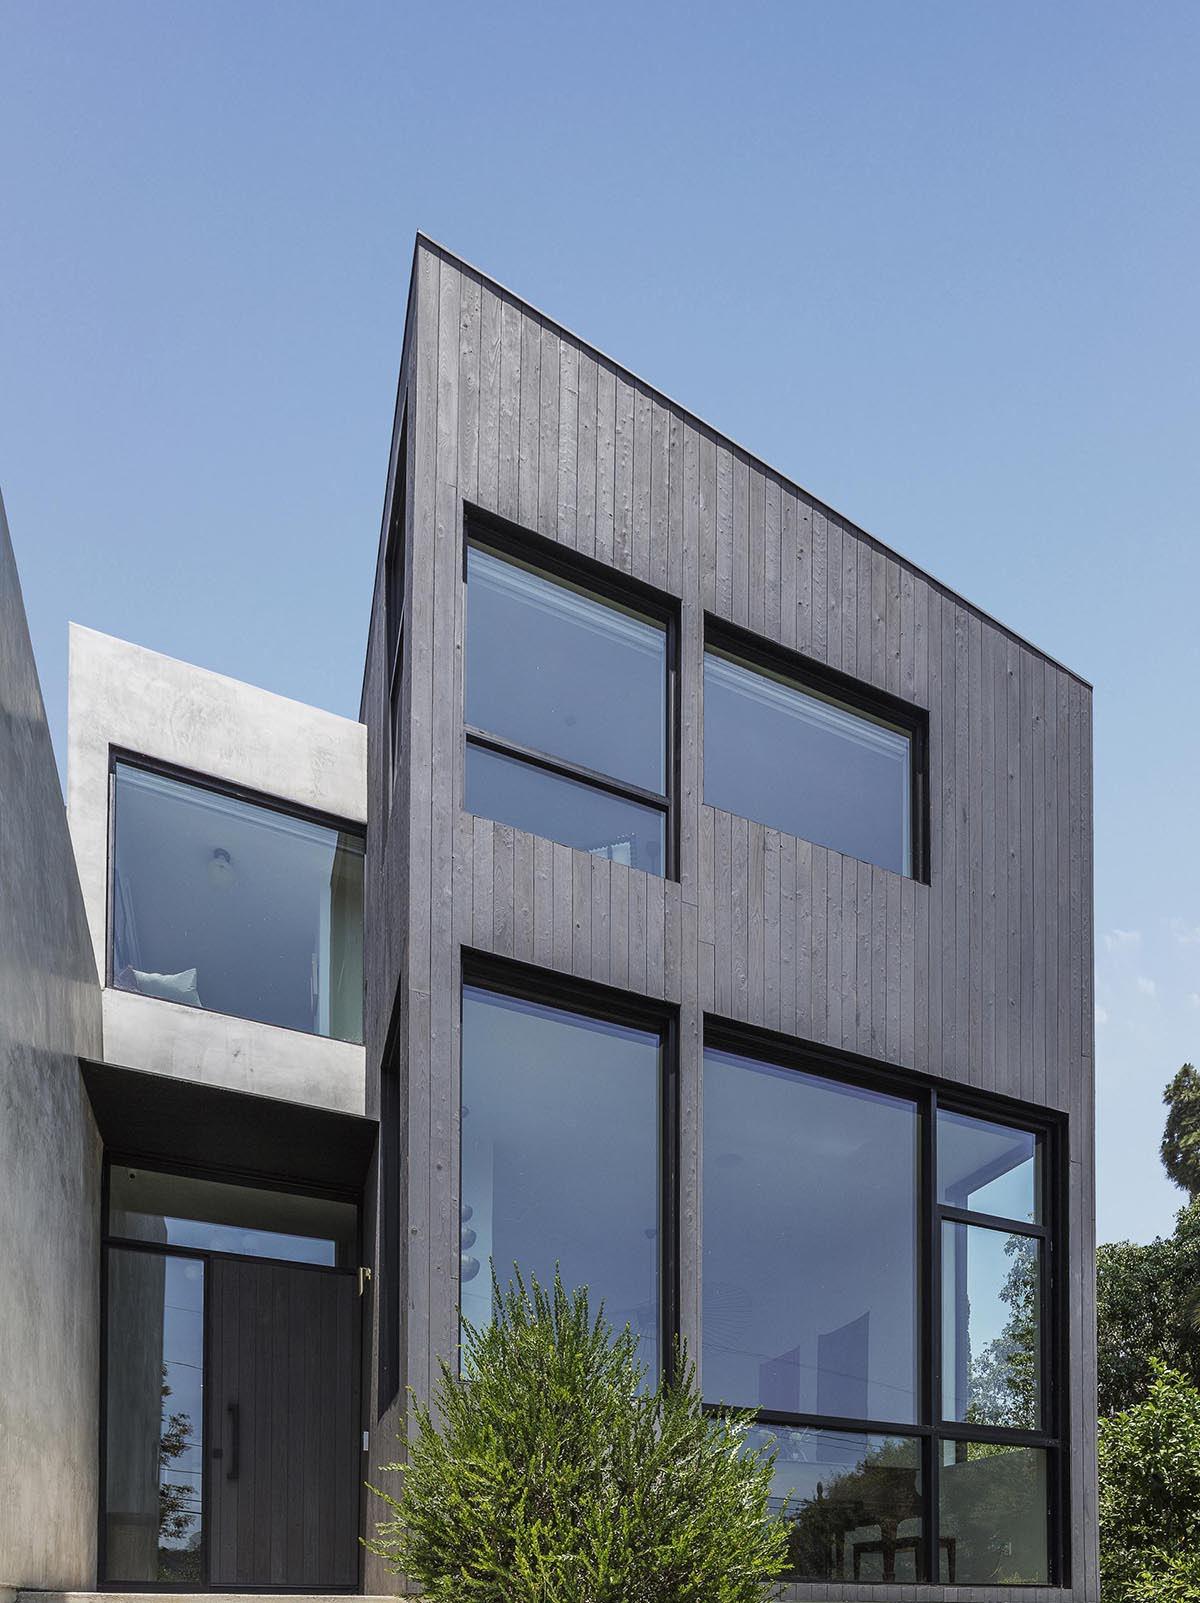 A modern house with Shou Sugi Ban charred cypress wood and a smooth exterior plaster.